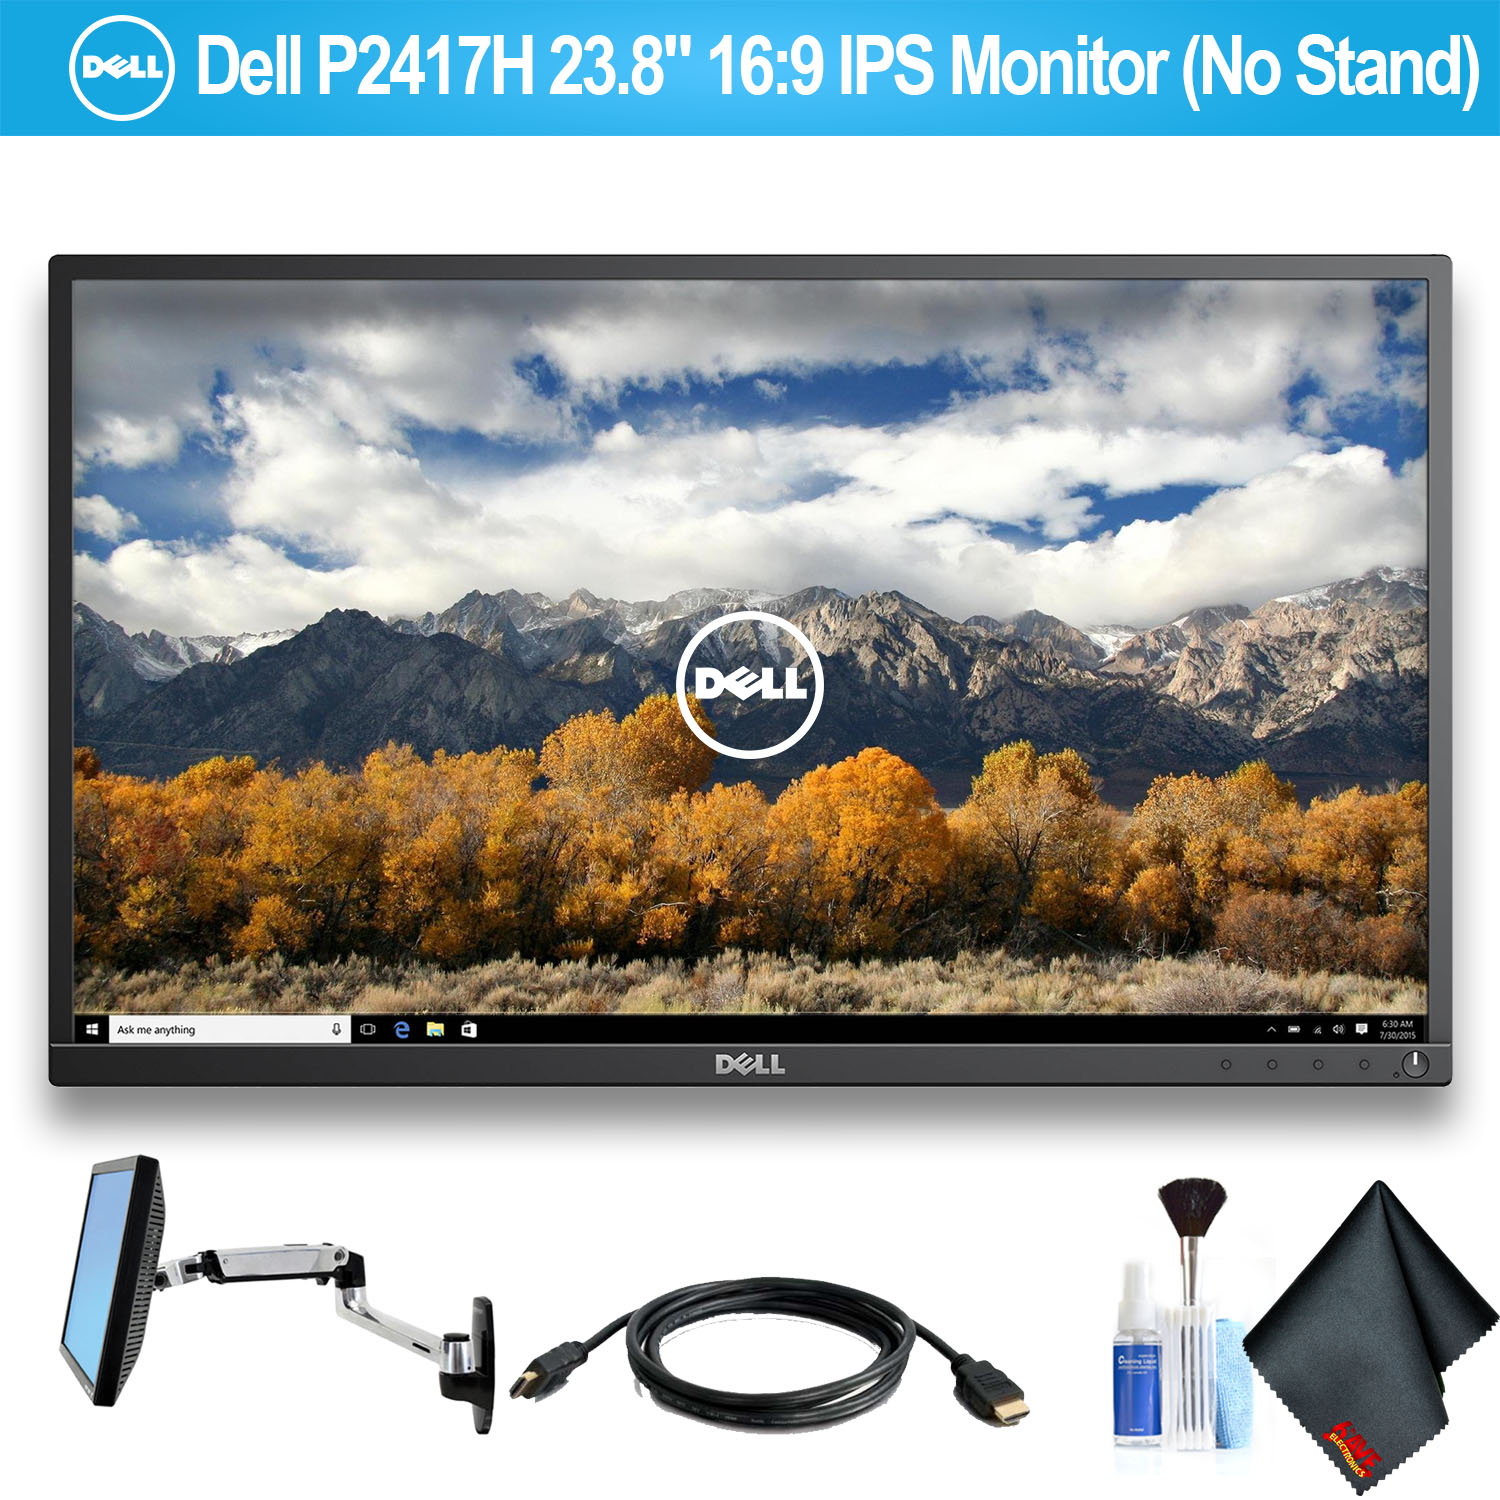 """Dell P2417H 23.8"""" 16:9 IPS Monitor (No Stand) With HDMI Cable and Ergotron 45-243-026 LX Wall Mount LCD Arm"""